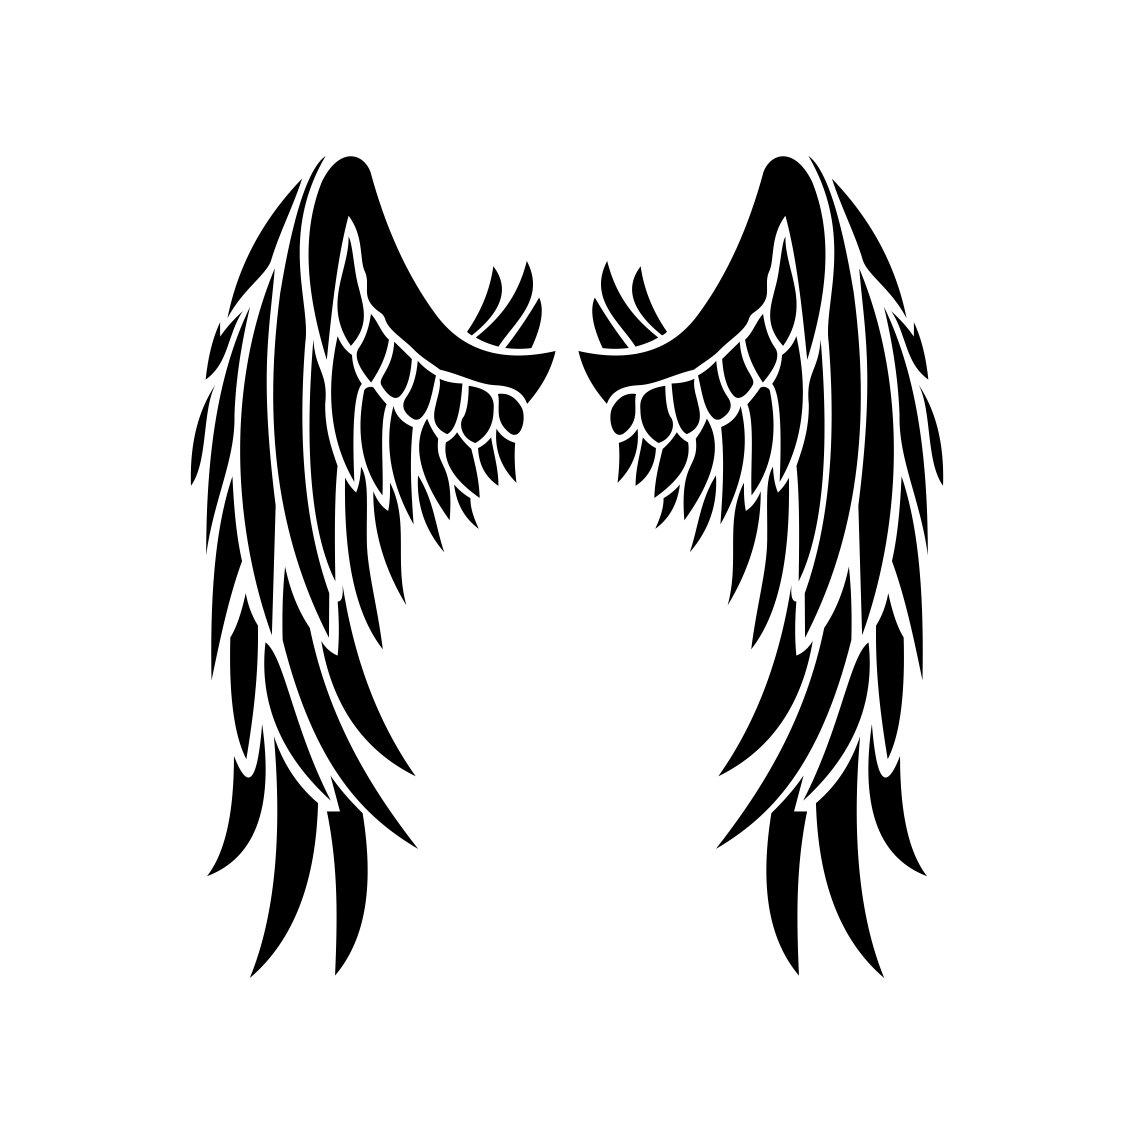 Angel Wings Graphics Design Svg Eps Dxf By